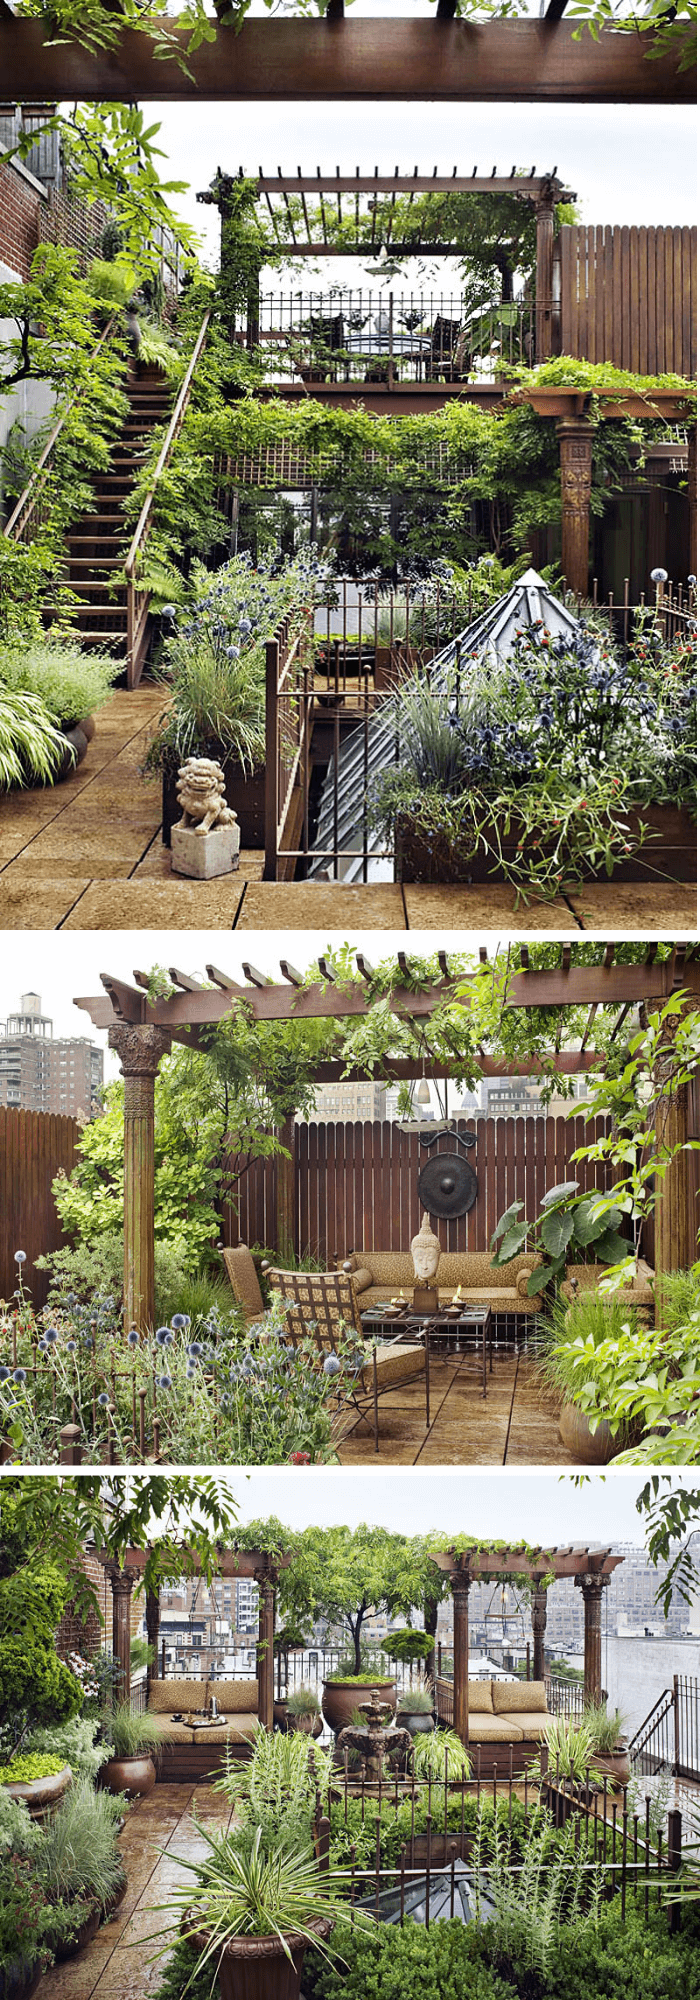 12+ Best Rooftop Garden Ideas & Designs For 2019